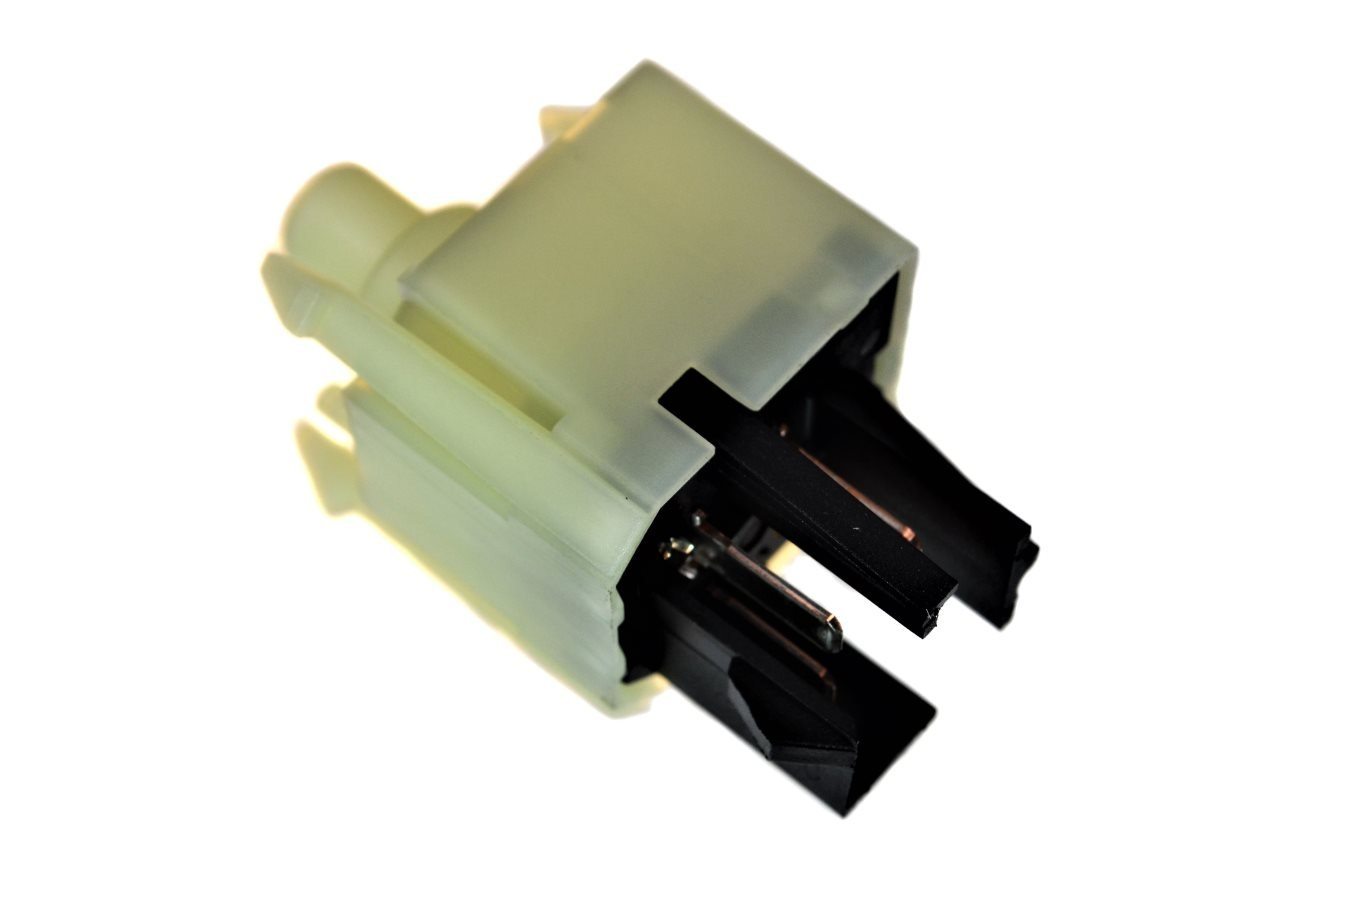 A//C /& Heater Blower Motor Switch for Manual Temperature Control PT Auto Warehouse BMS-527